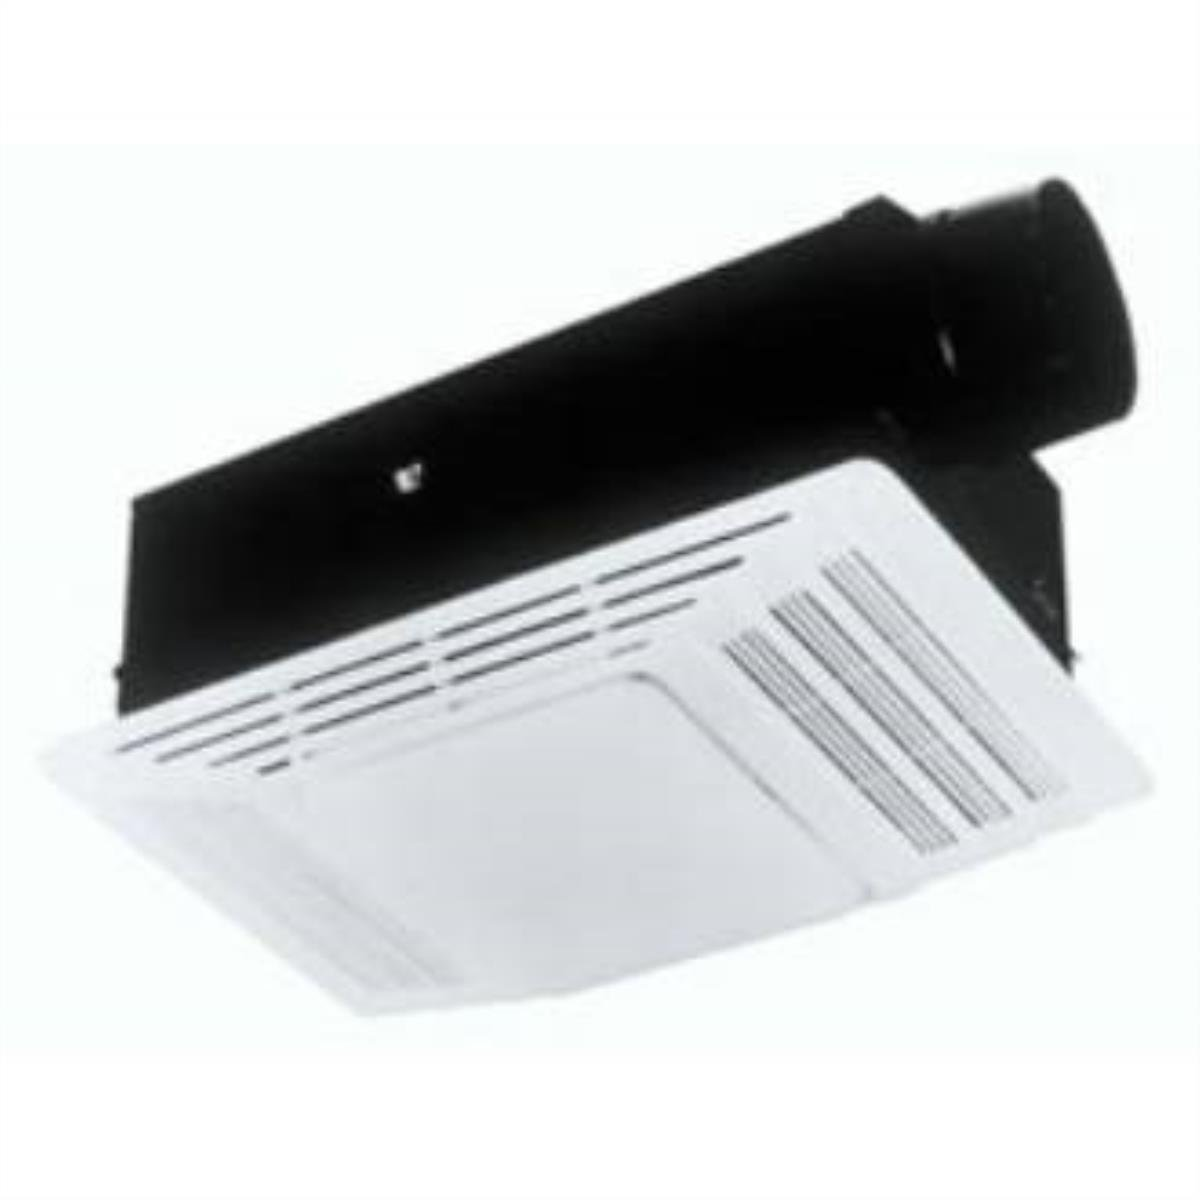 Bathroom Light With Heater And Fan: The 50 Top Fan and Ventilation Systems,Lighting